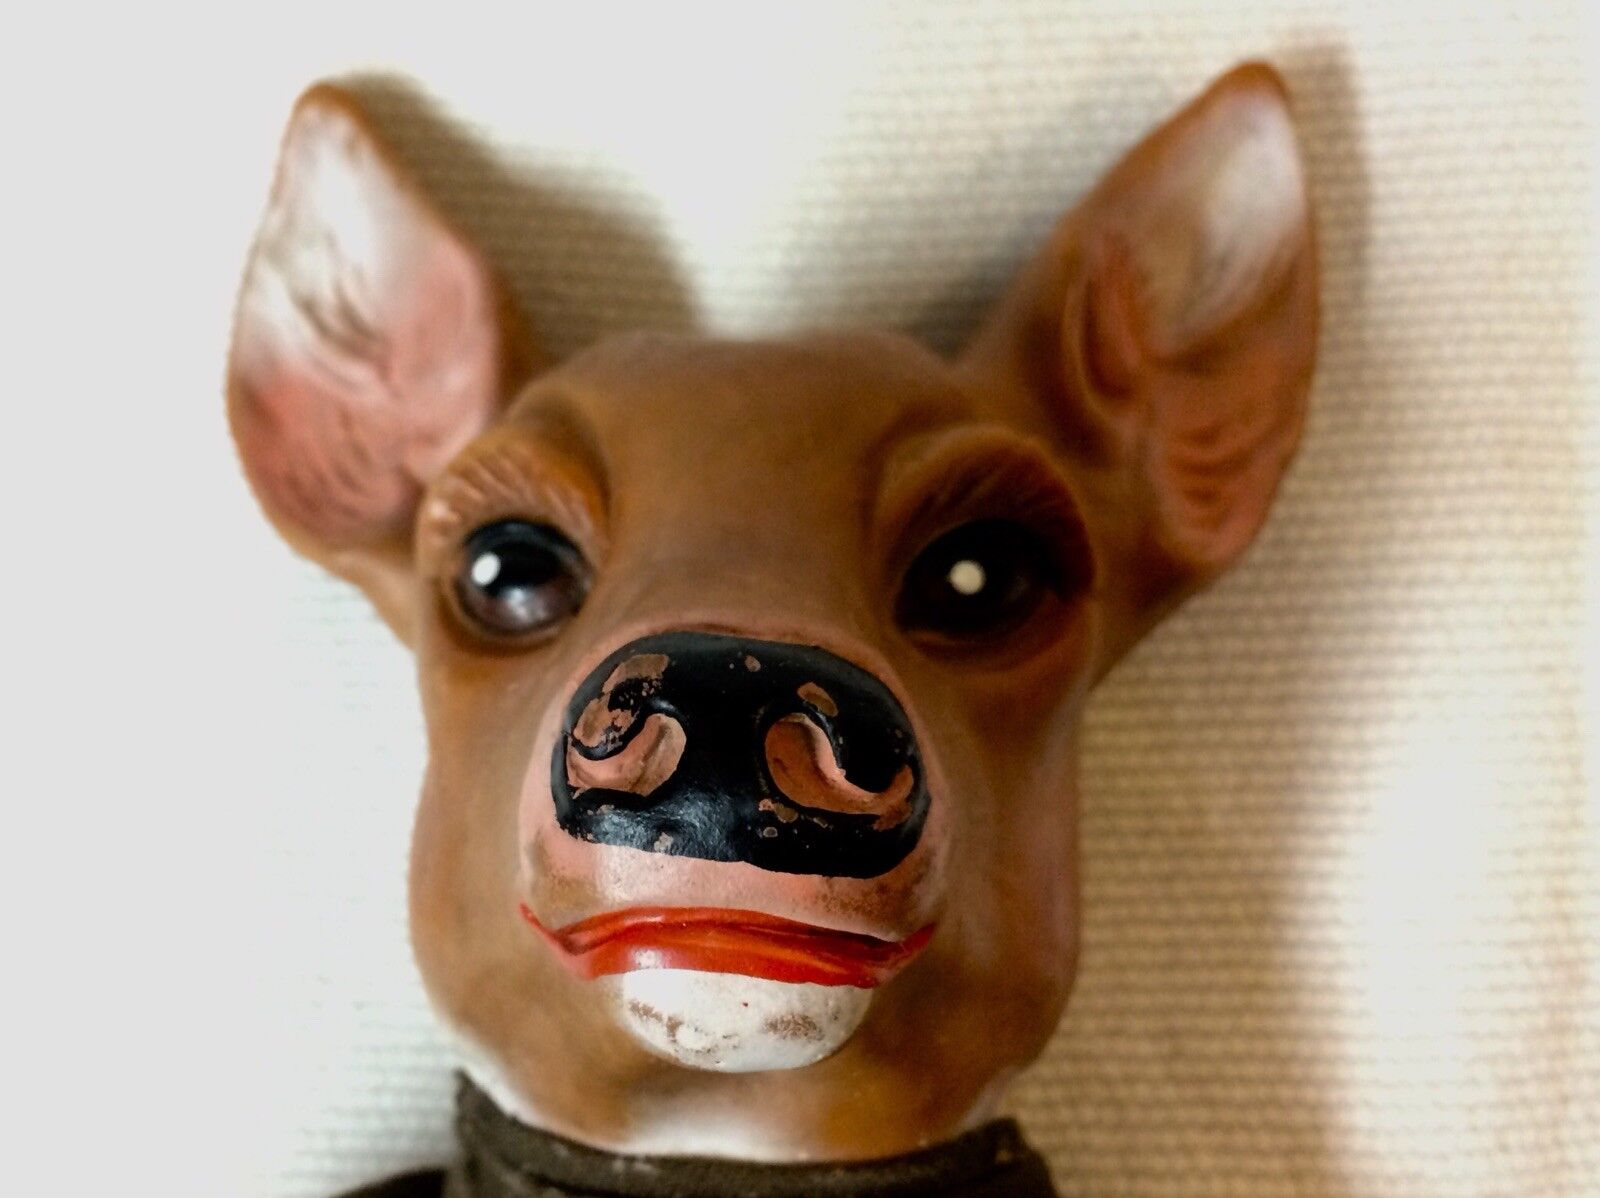 AMAZING DEER / FAWN HAND PUPPET  c. 1940-1950  UNIQUE COLLECTIBLE